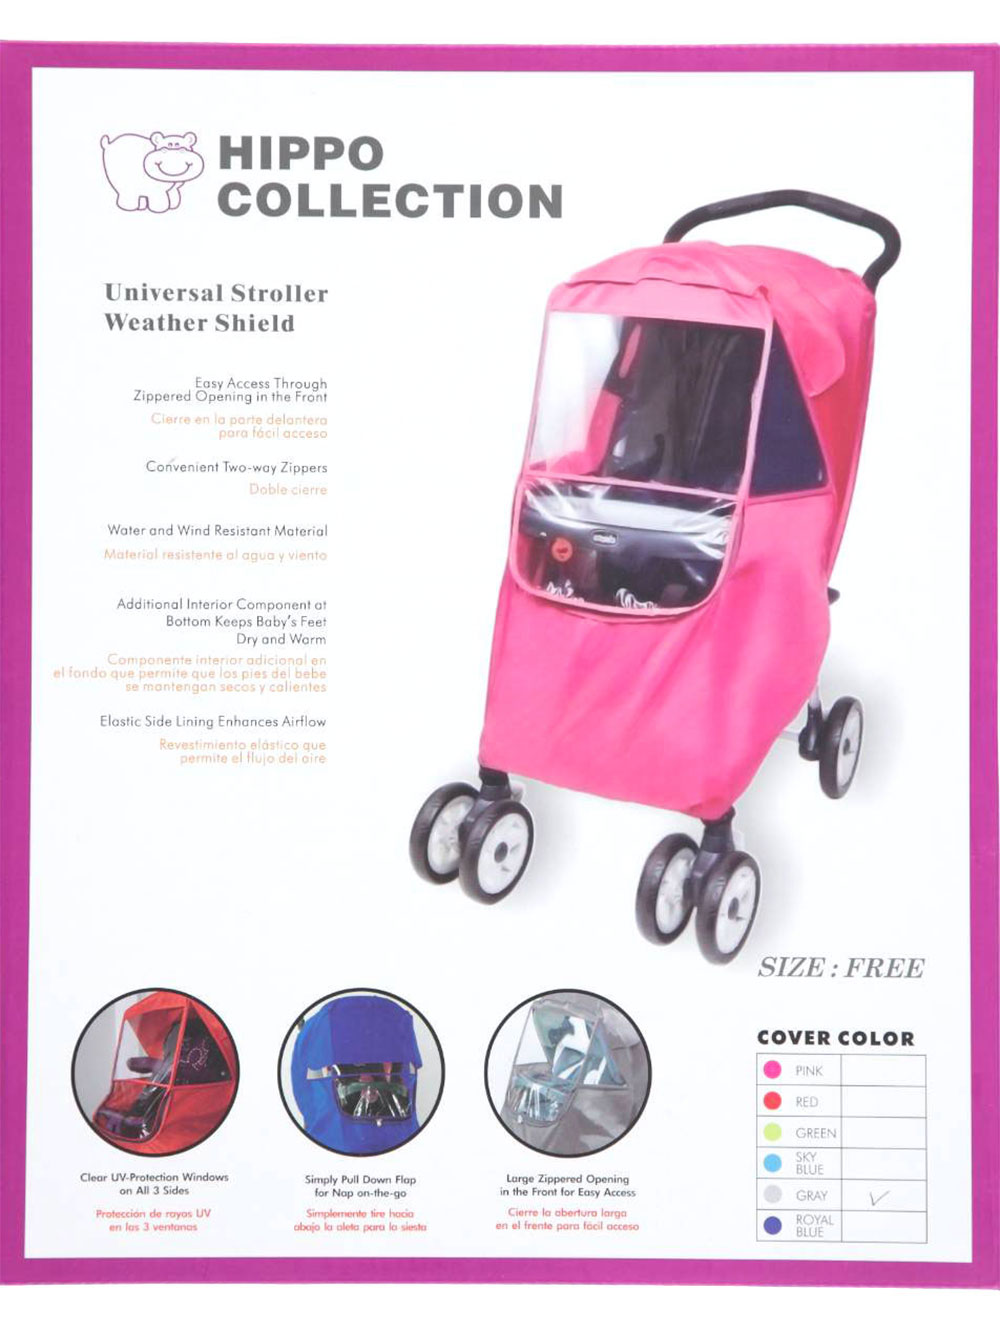 Hippo Collection Universal Stroller Weather Shield Rain Cover US Seller